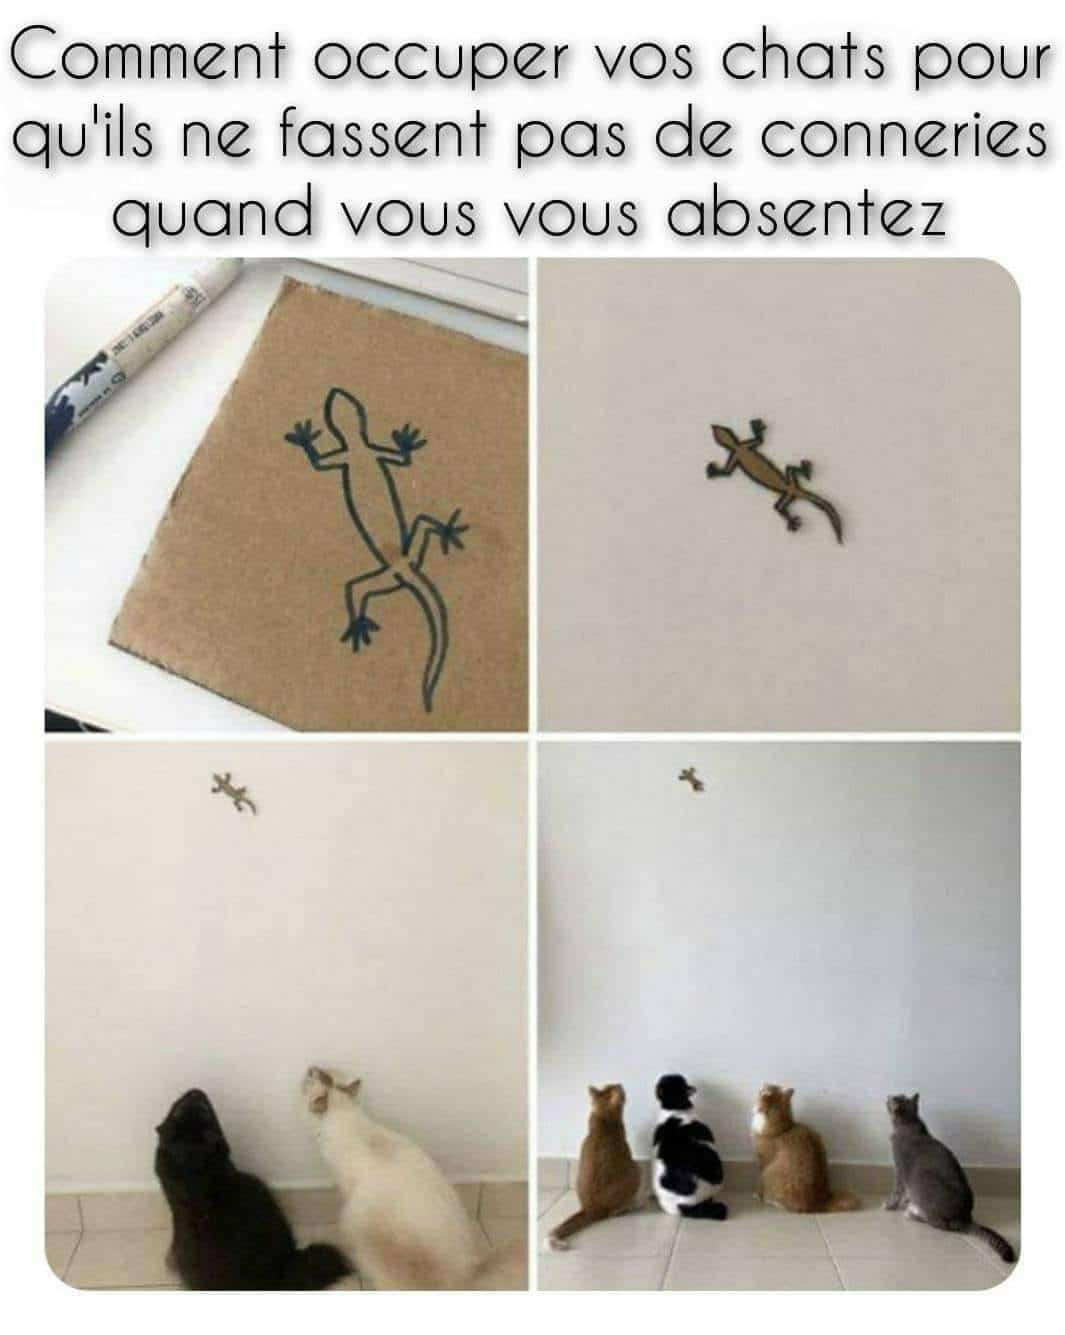 Comment occuper vos chats